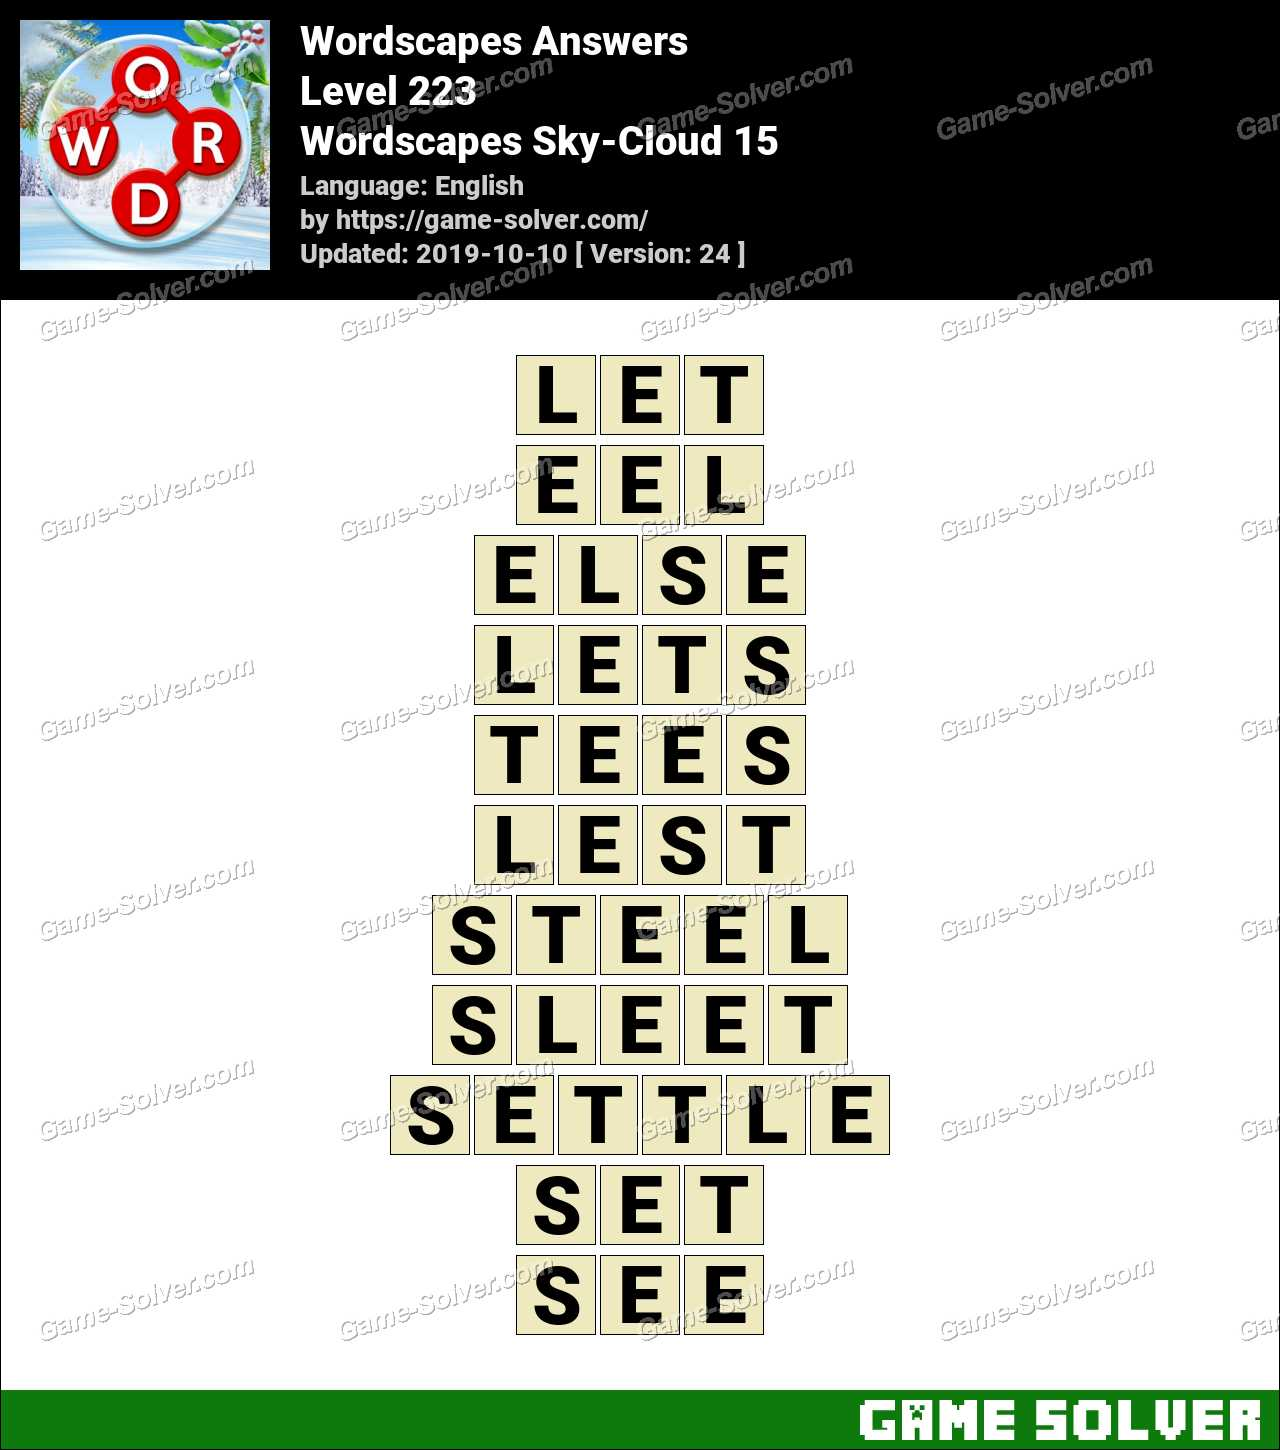 Wordscapes Sky-Cloud 15 Answers